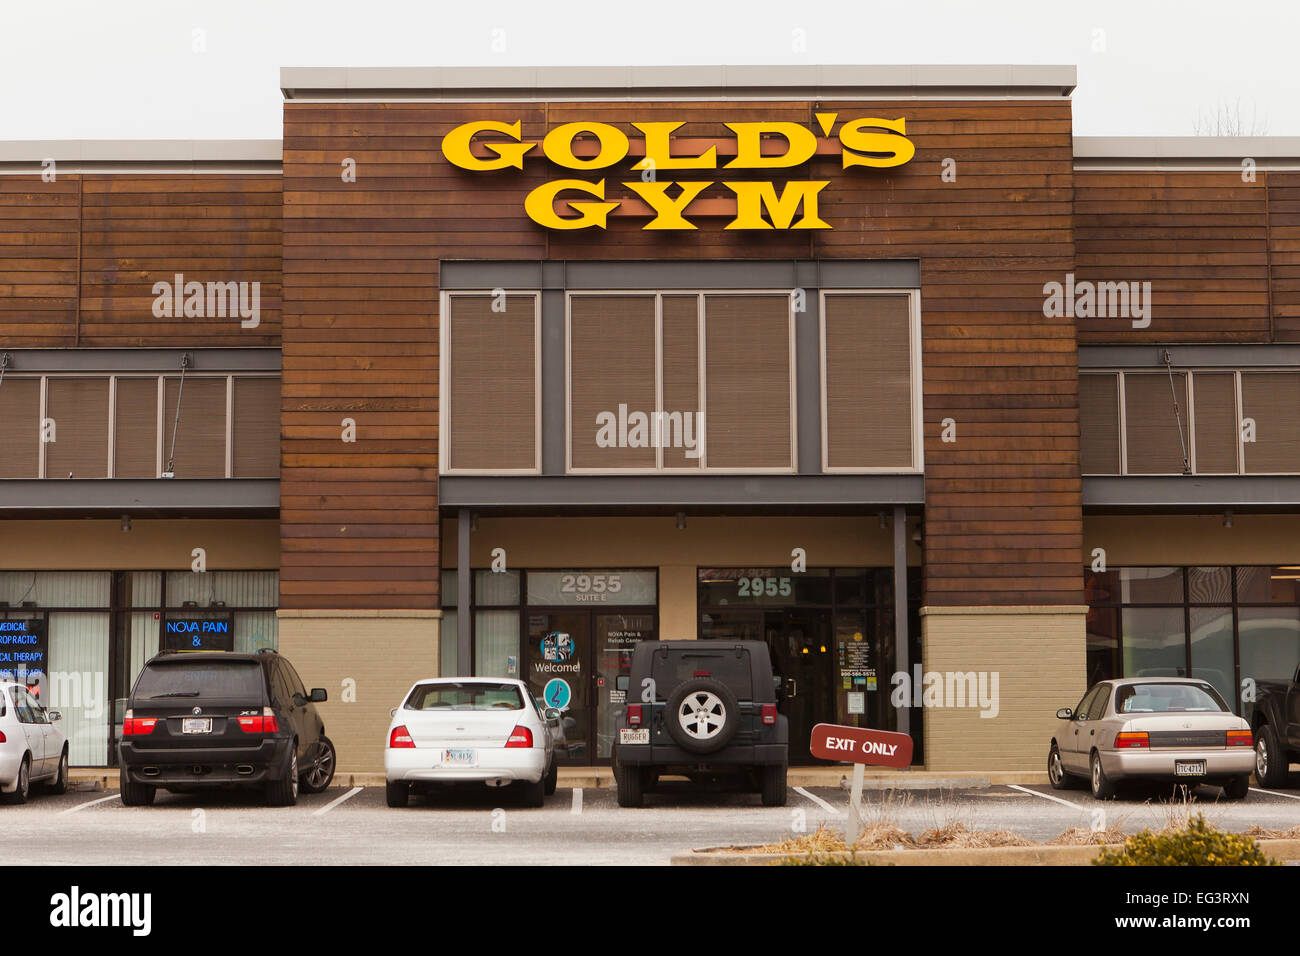 Golds Gym Stock Photos & Golds Gym Stock Images - Alamy